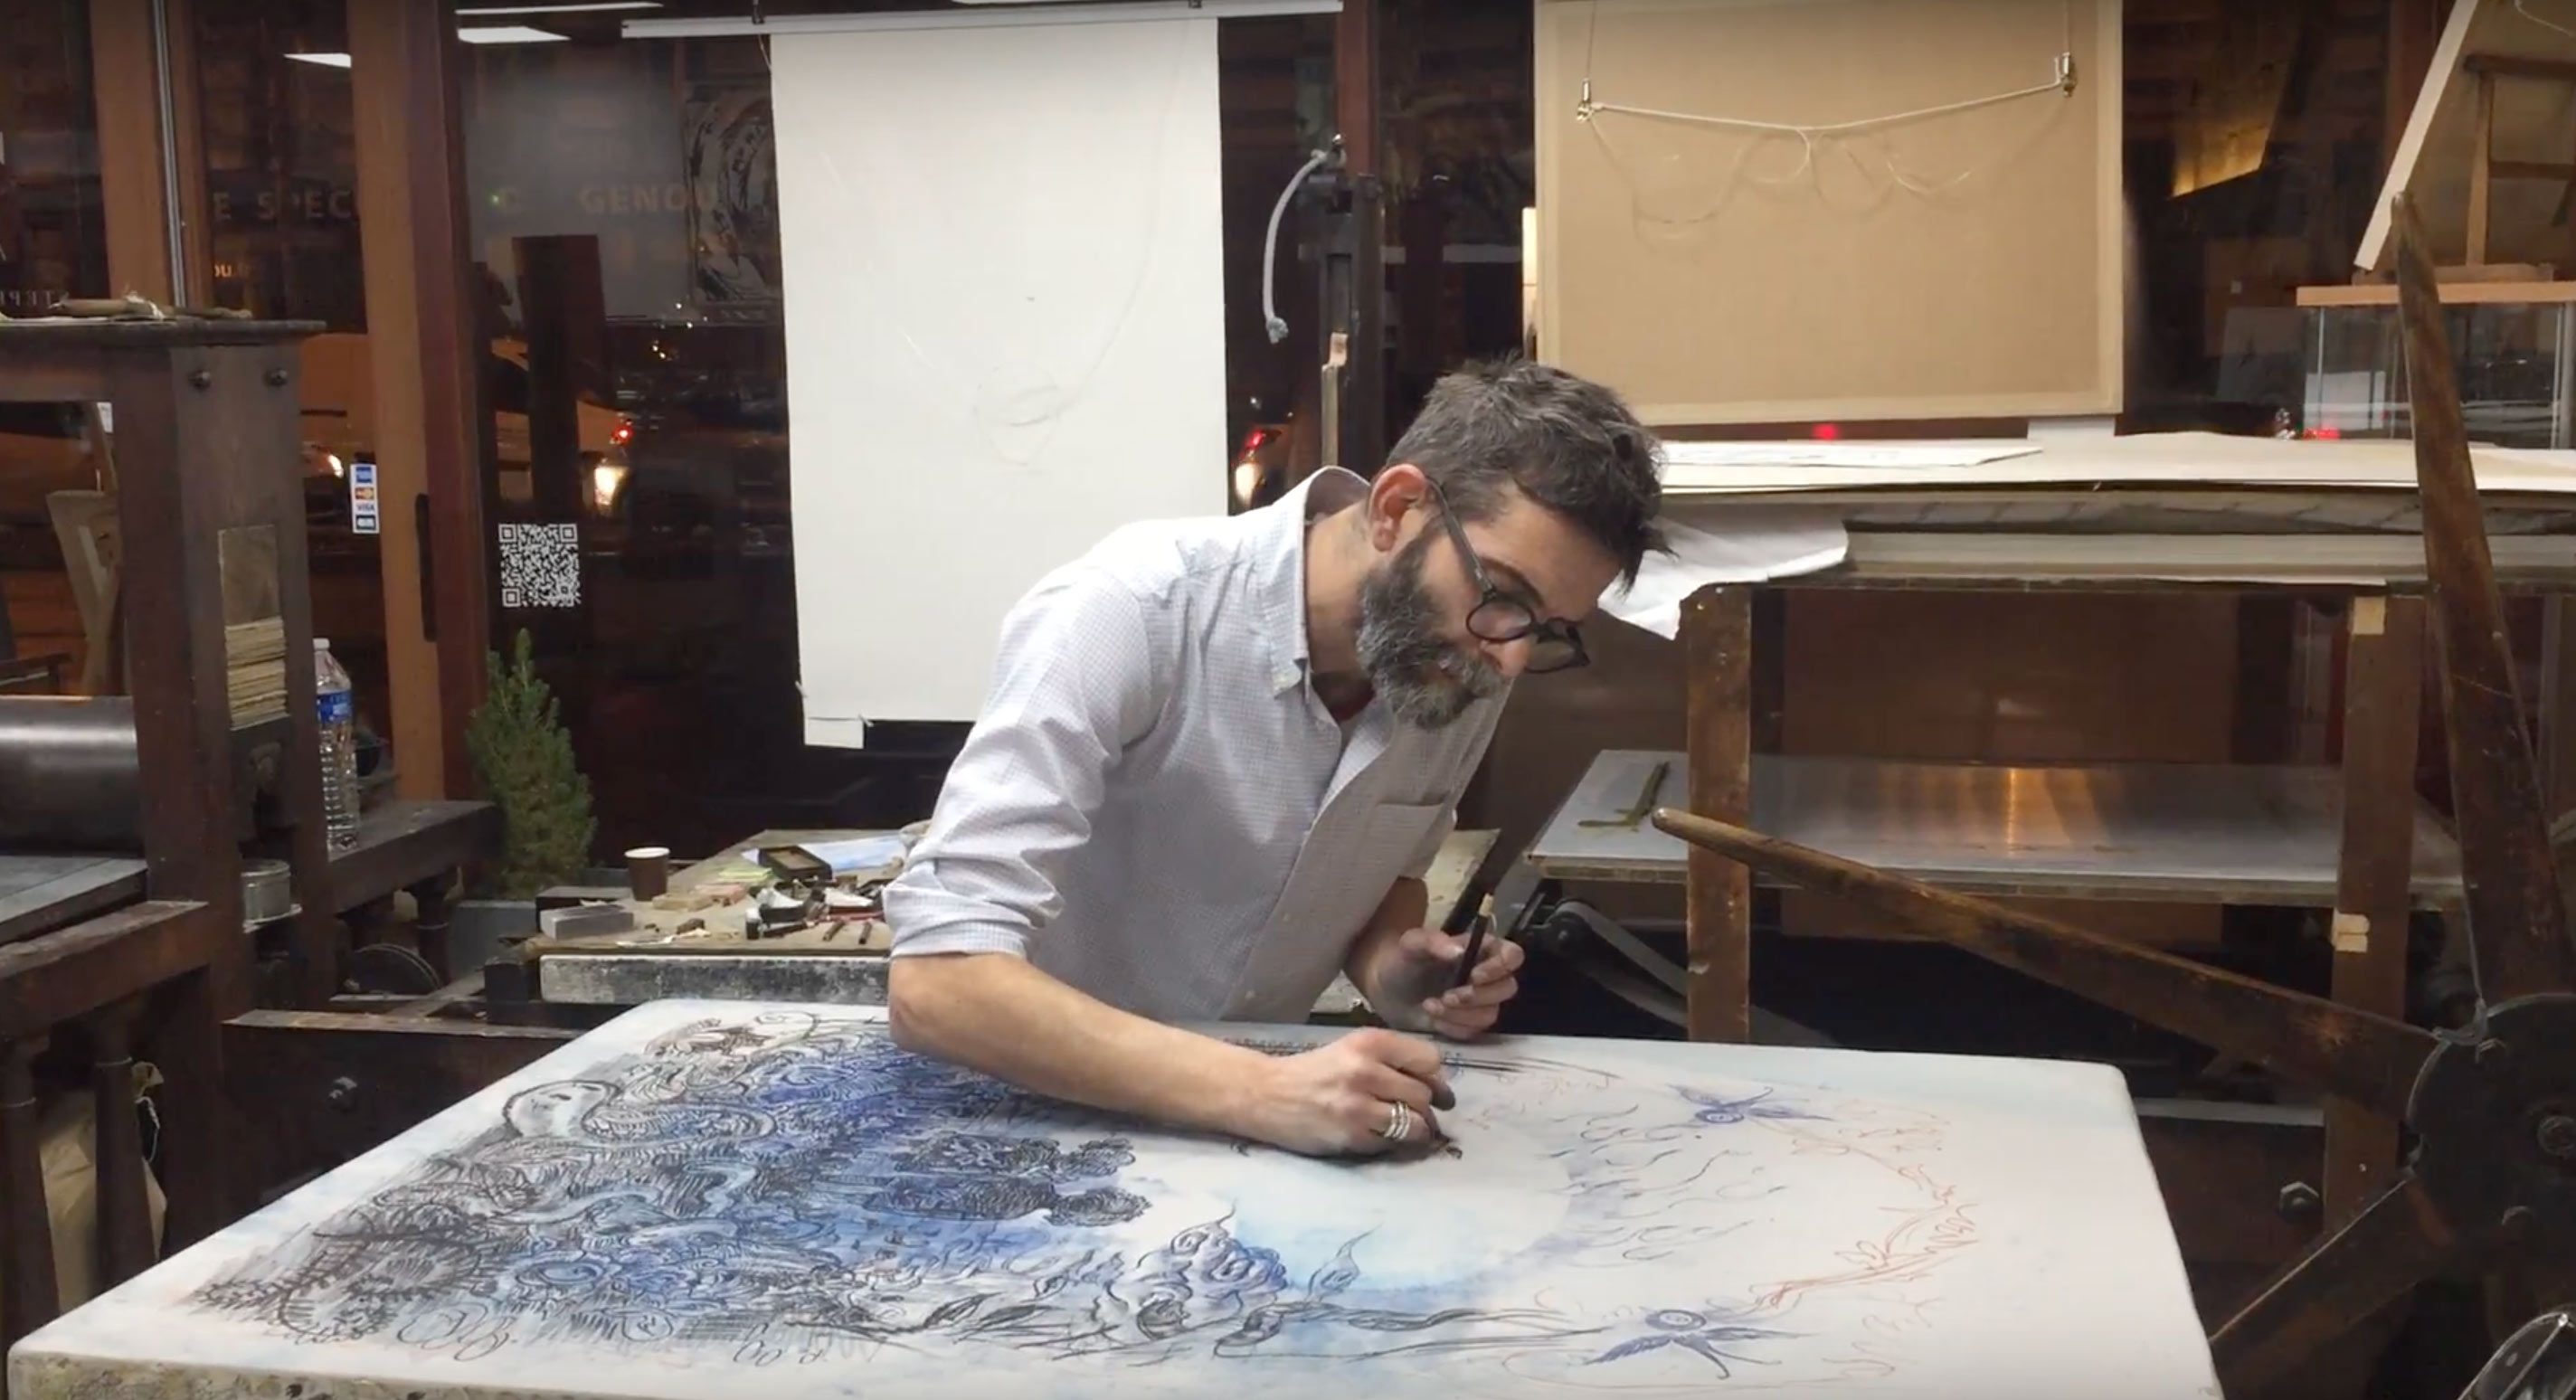 Video - Winshluss travaillant sur le dessin de la lithographie Over The Rainbow (suite)